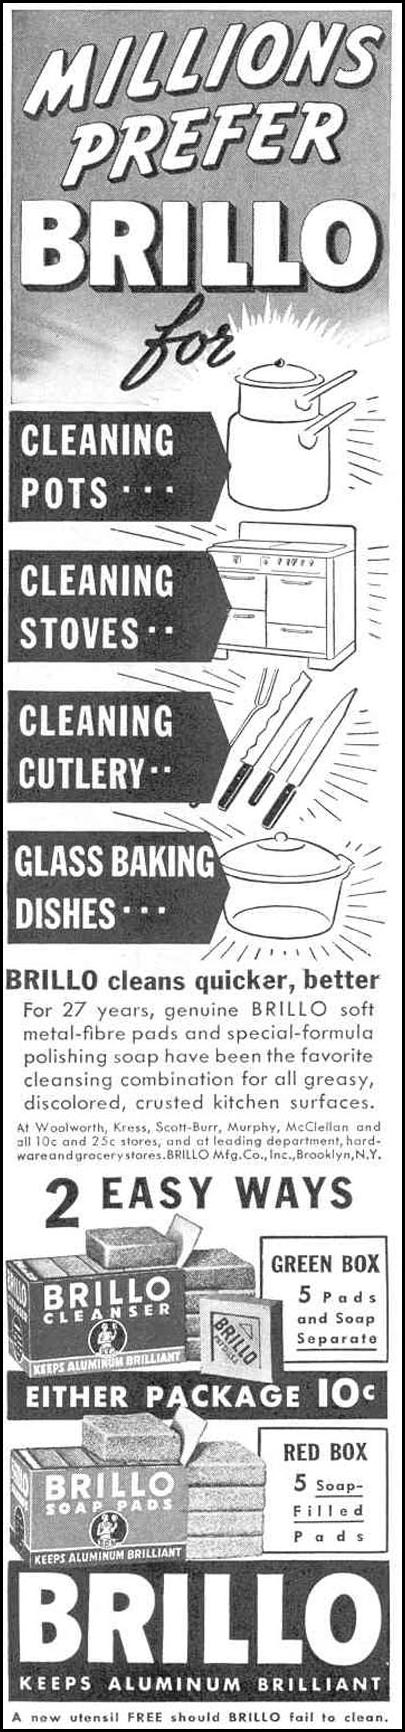 BRILLO SOAP PADS GOOD HOUSEKEEPING 03/01/1940 p. 86